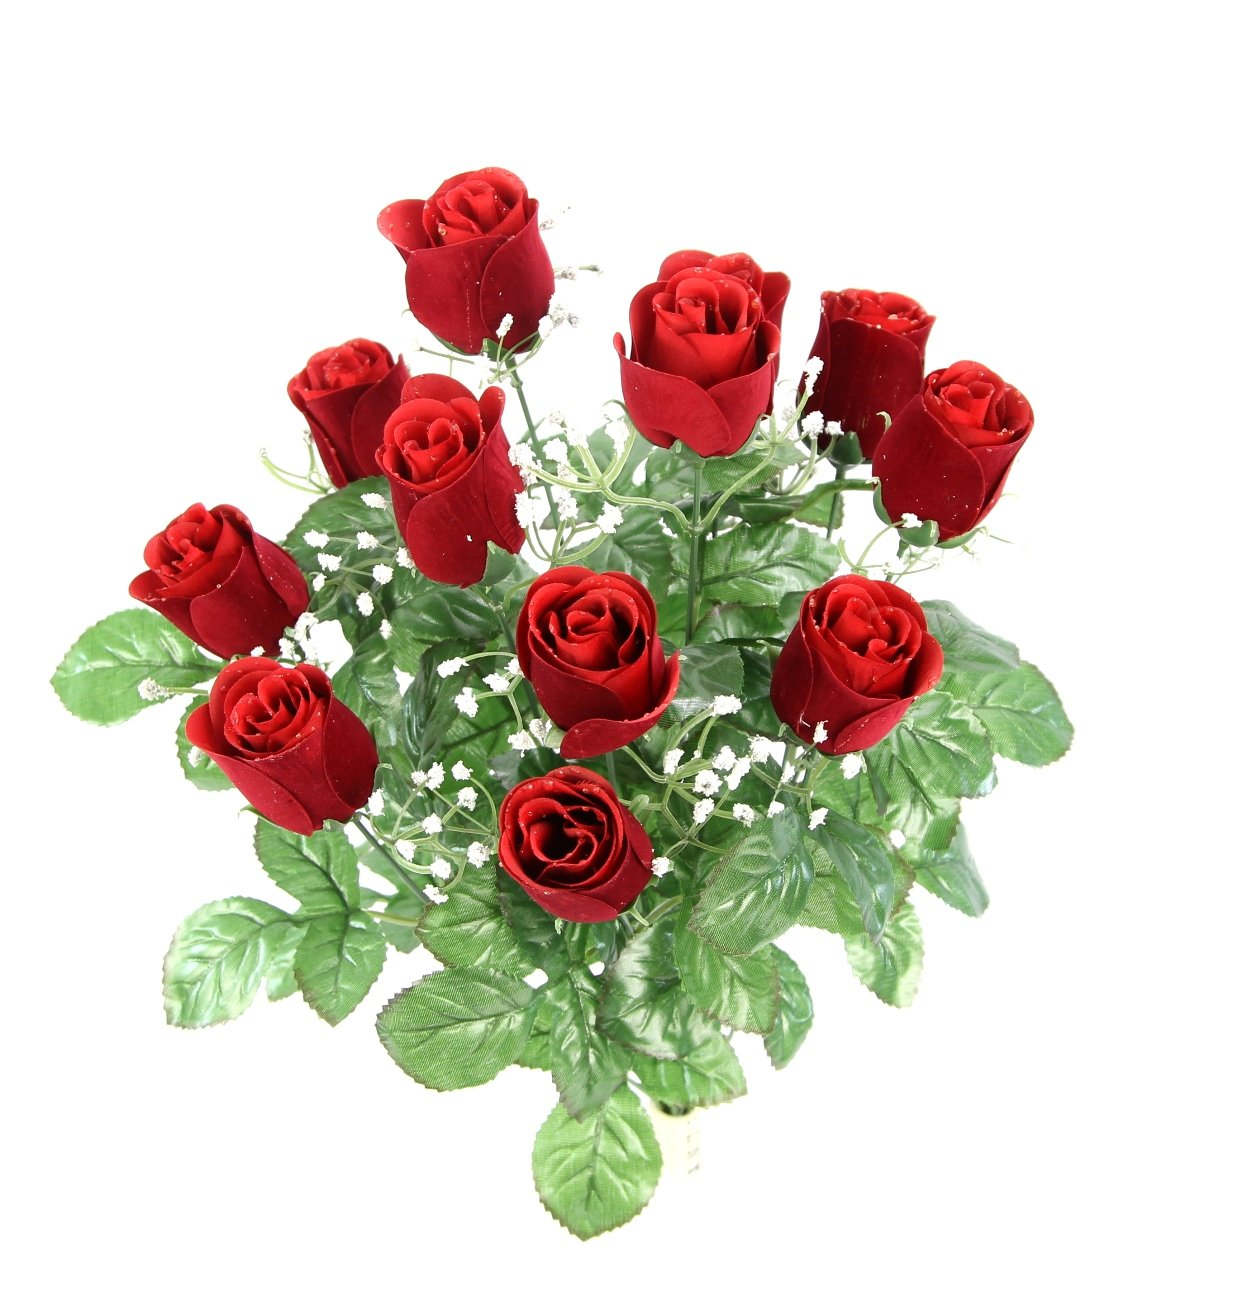 Admired-By-Nature-GPB8377-RED-12-Stems-Artificial-Velvet-Rose-Buds-Red